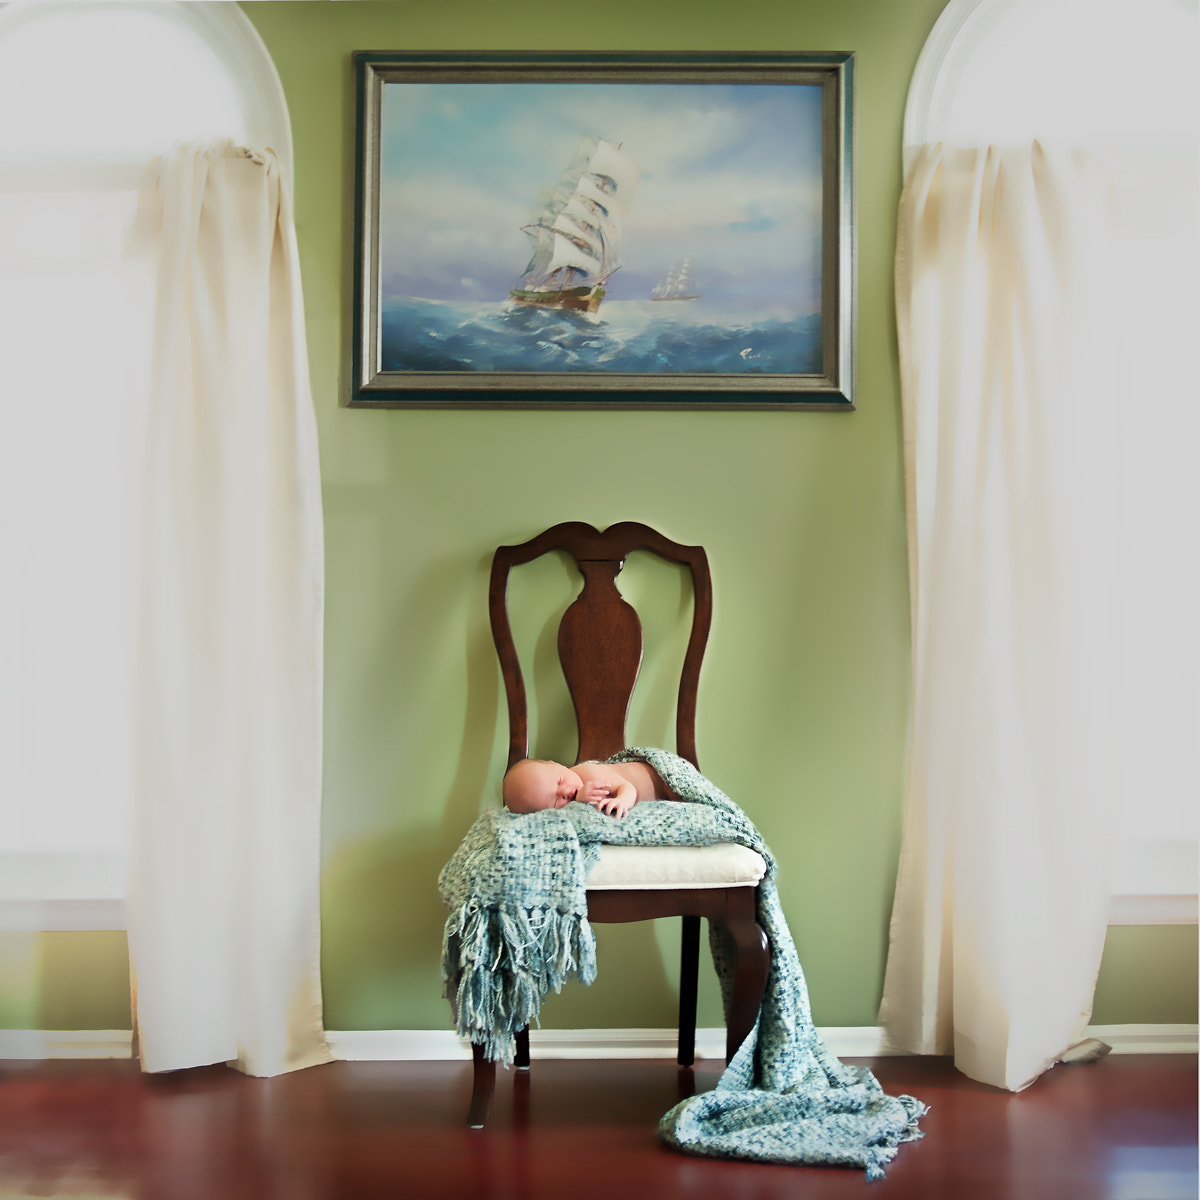 Photograph Sail to Dreamland by Melissa Richardson on 500px